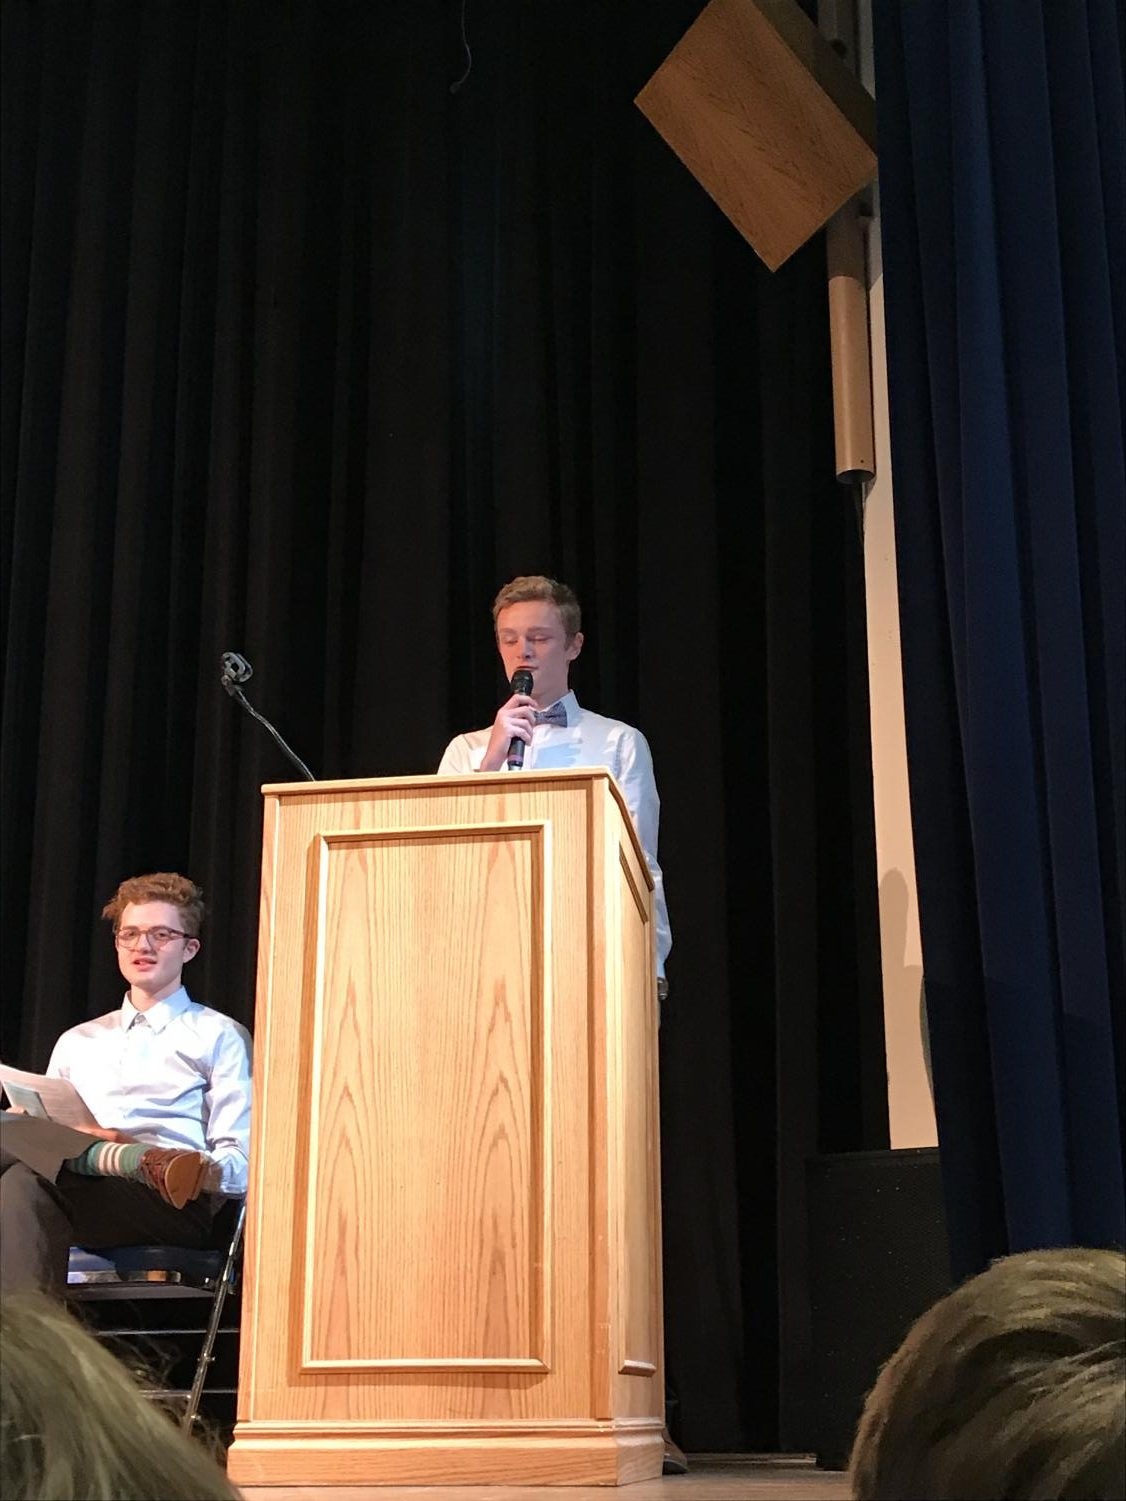 NHS President Zach Barrett giving a speech at the NHS induction ceremony